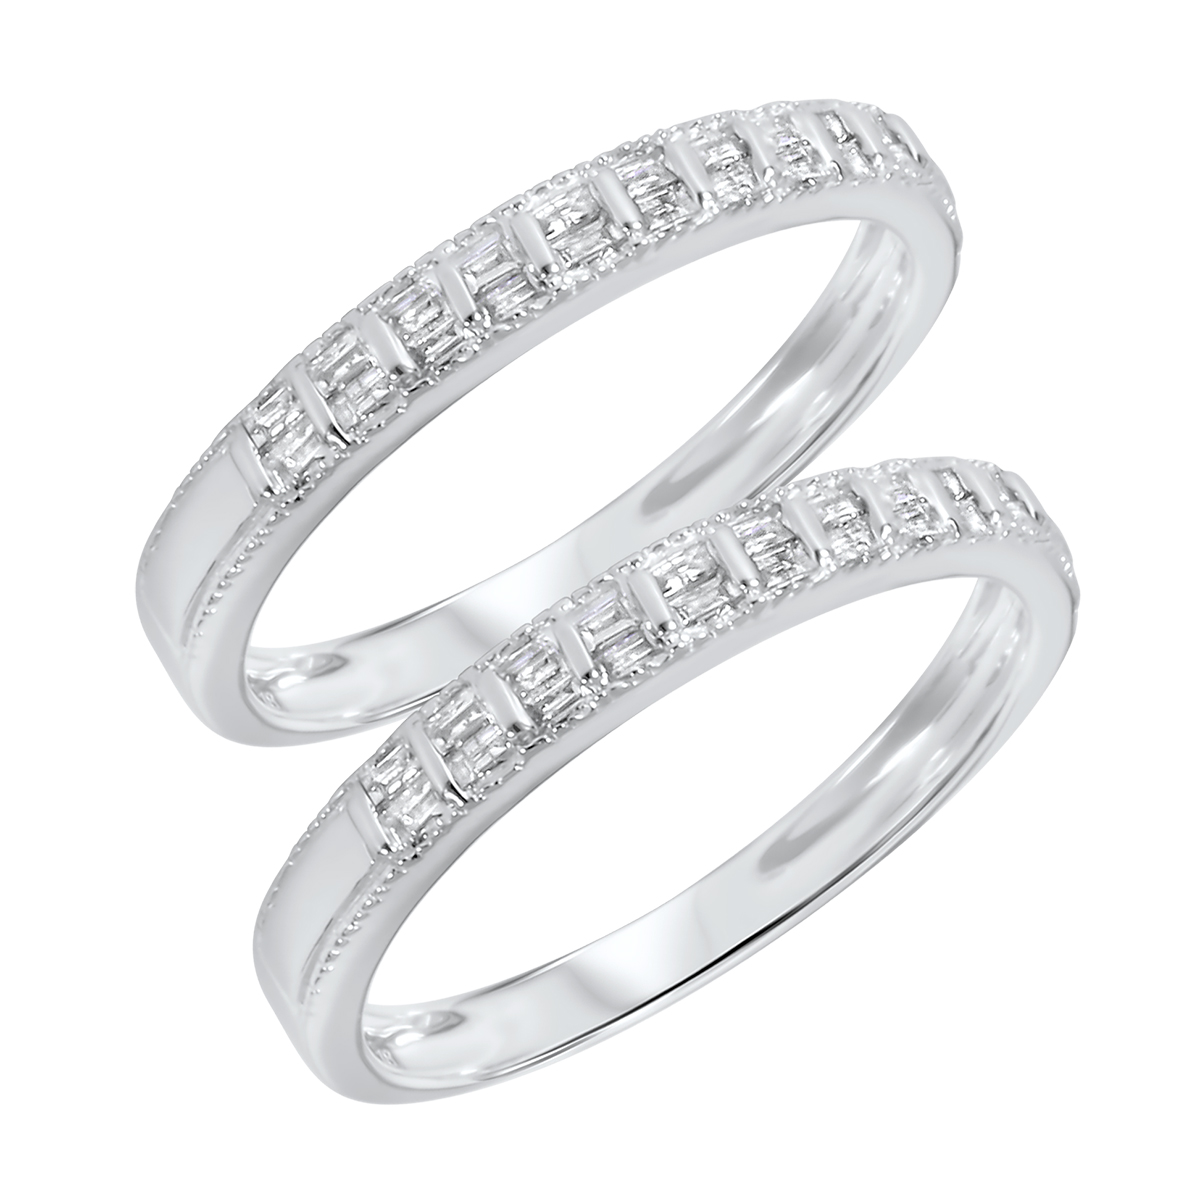 3/8 Carat T.W. Baguette Cut Ladies Same Sex Wedding Band Set 14K White Gold-